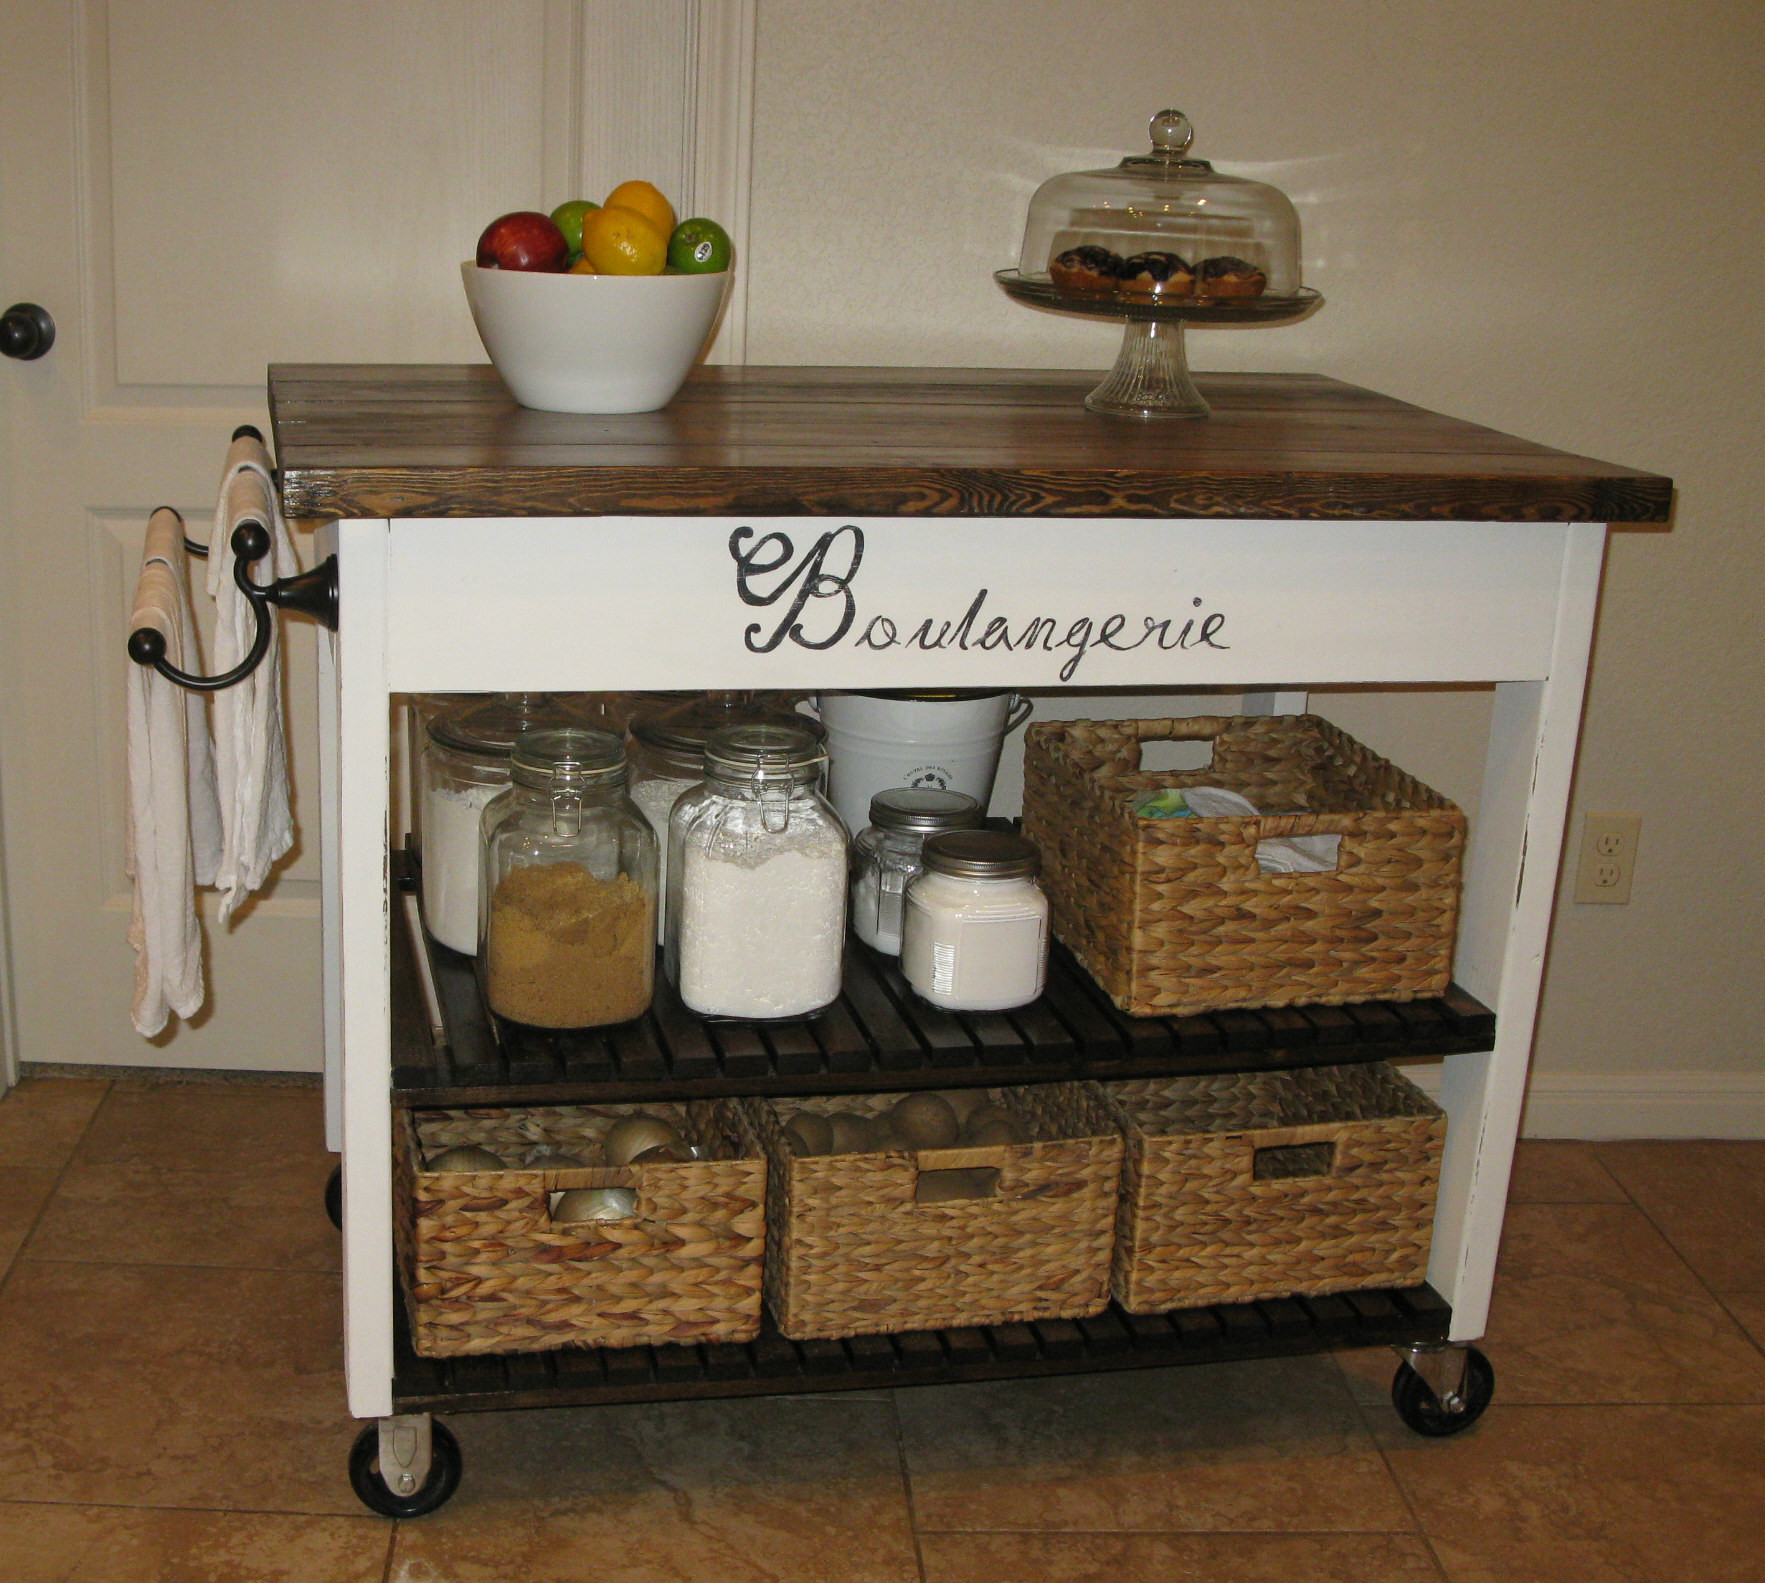 Best ideas about Kitchen Cart DIY . Save or Pin Ana White Now.